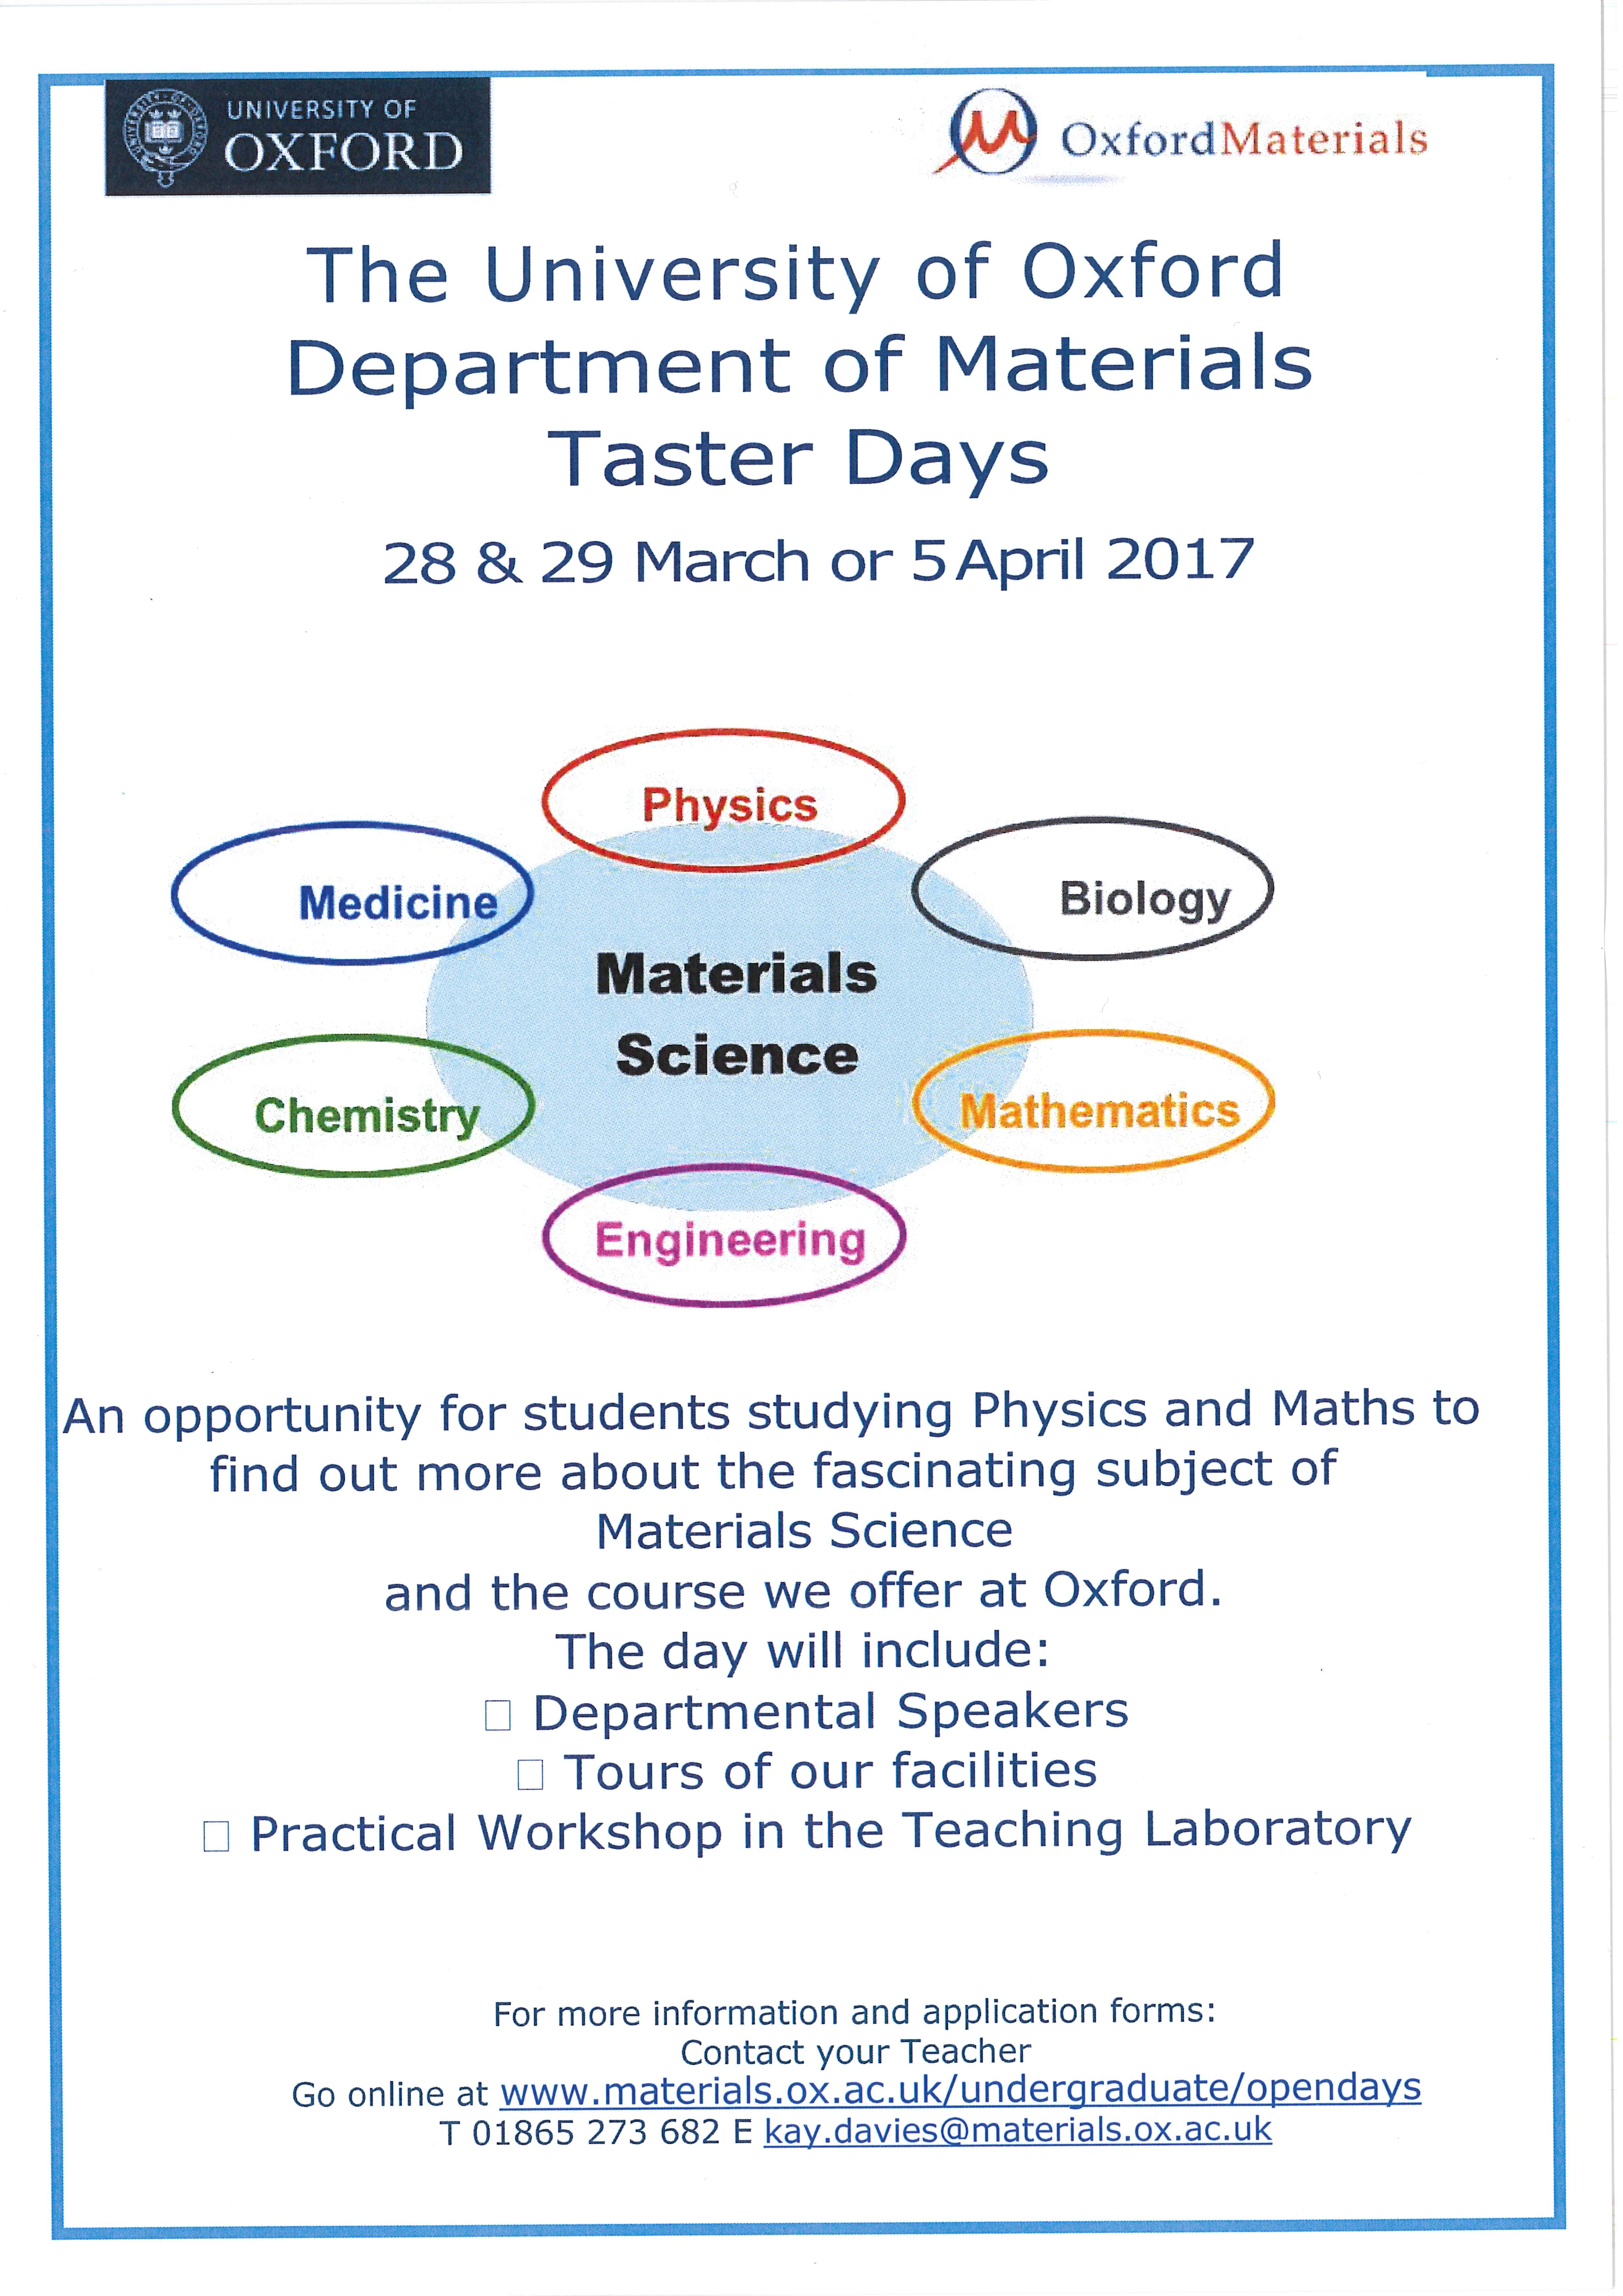 University of Oxford Department of Materials Taster Day